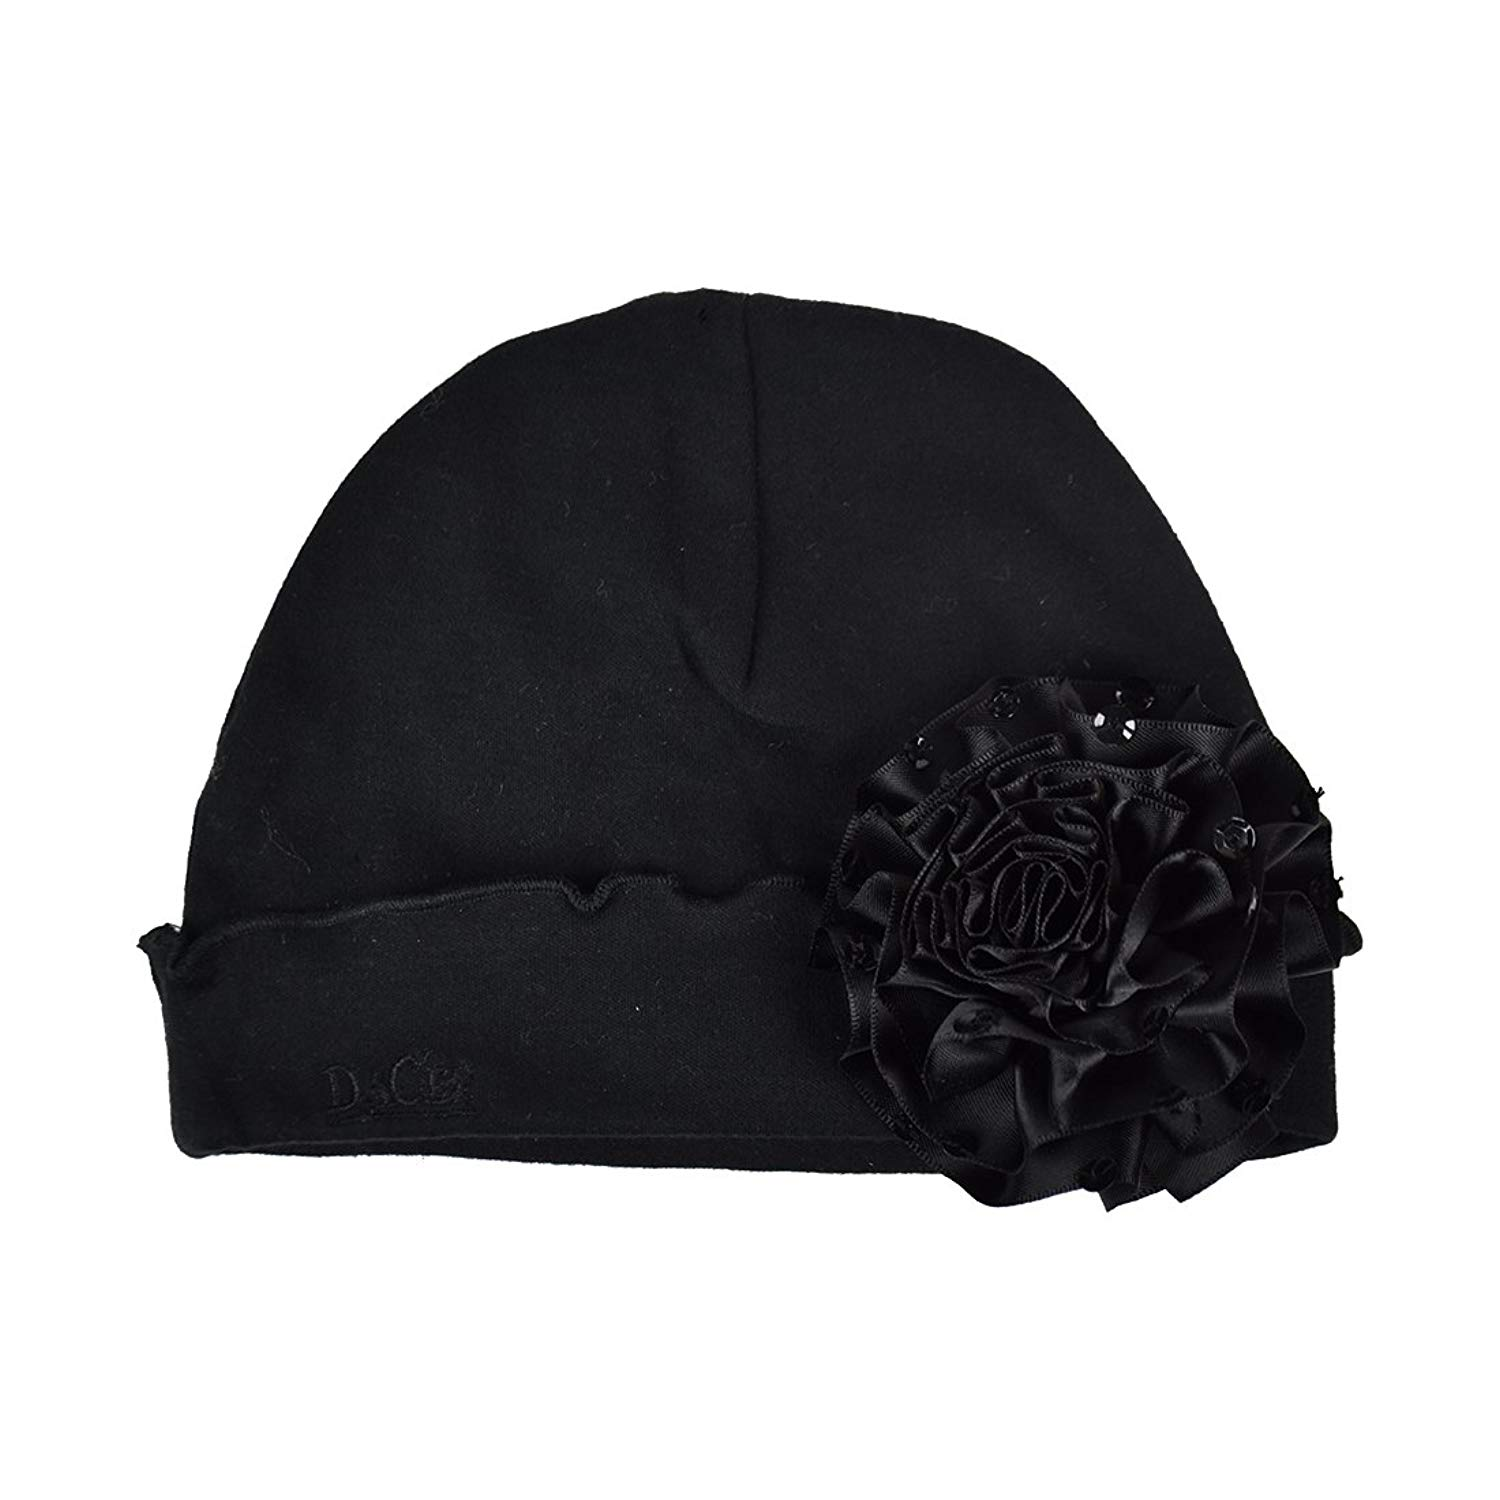 d6782d99892 Get Quotations · DaCee Designs  Baby Hat With Satin Puff   Sequins